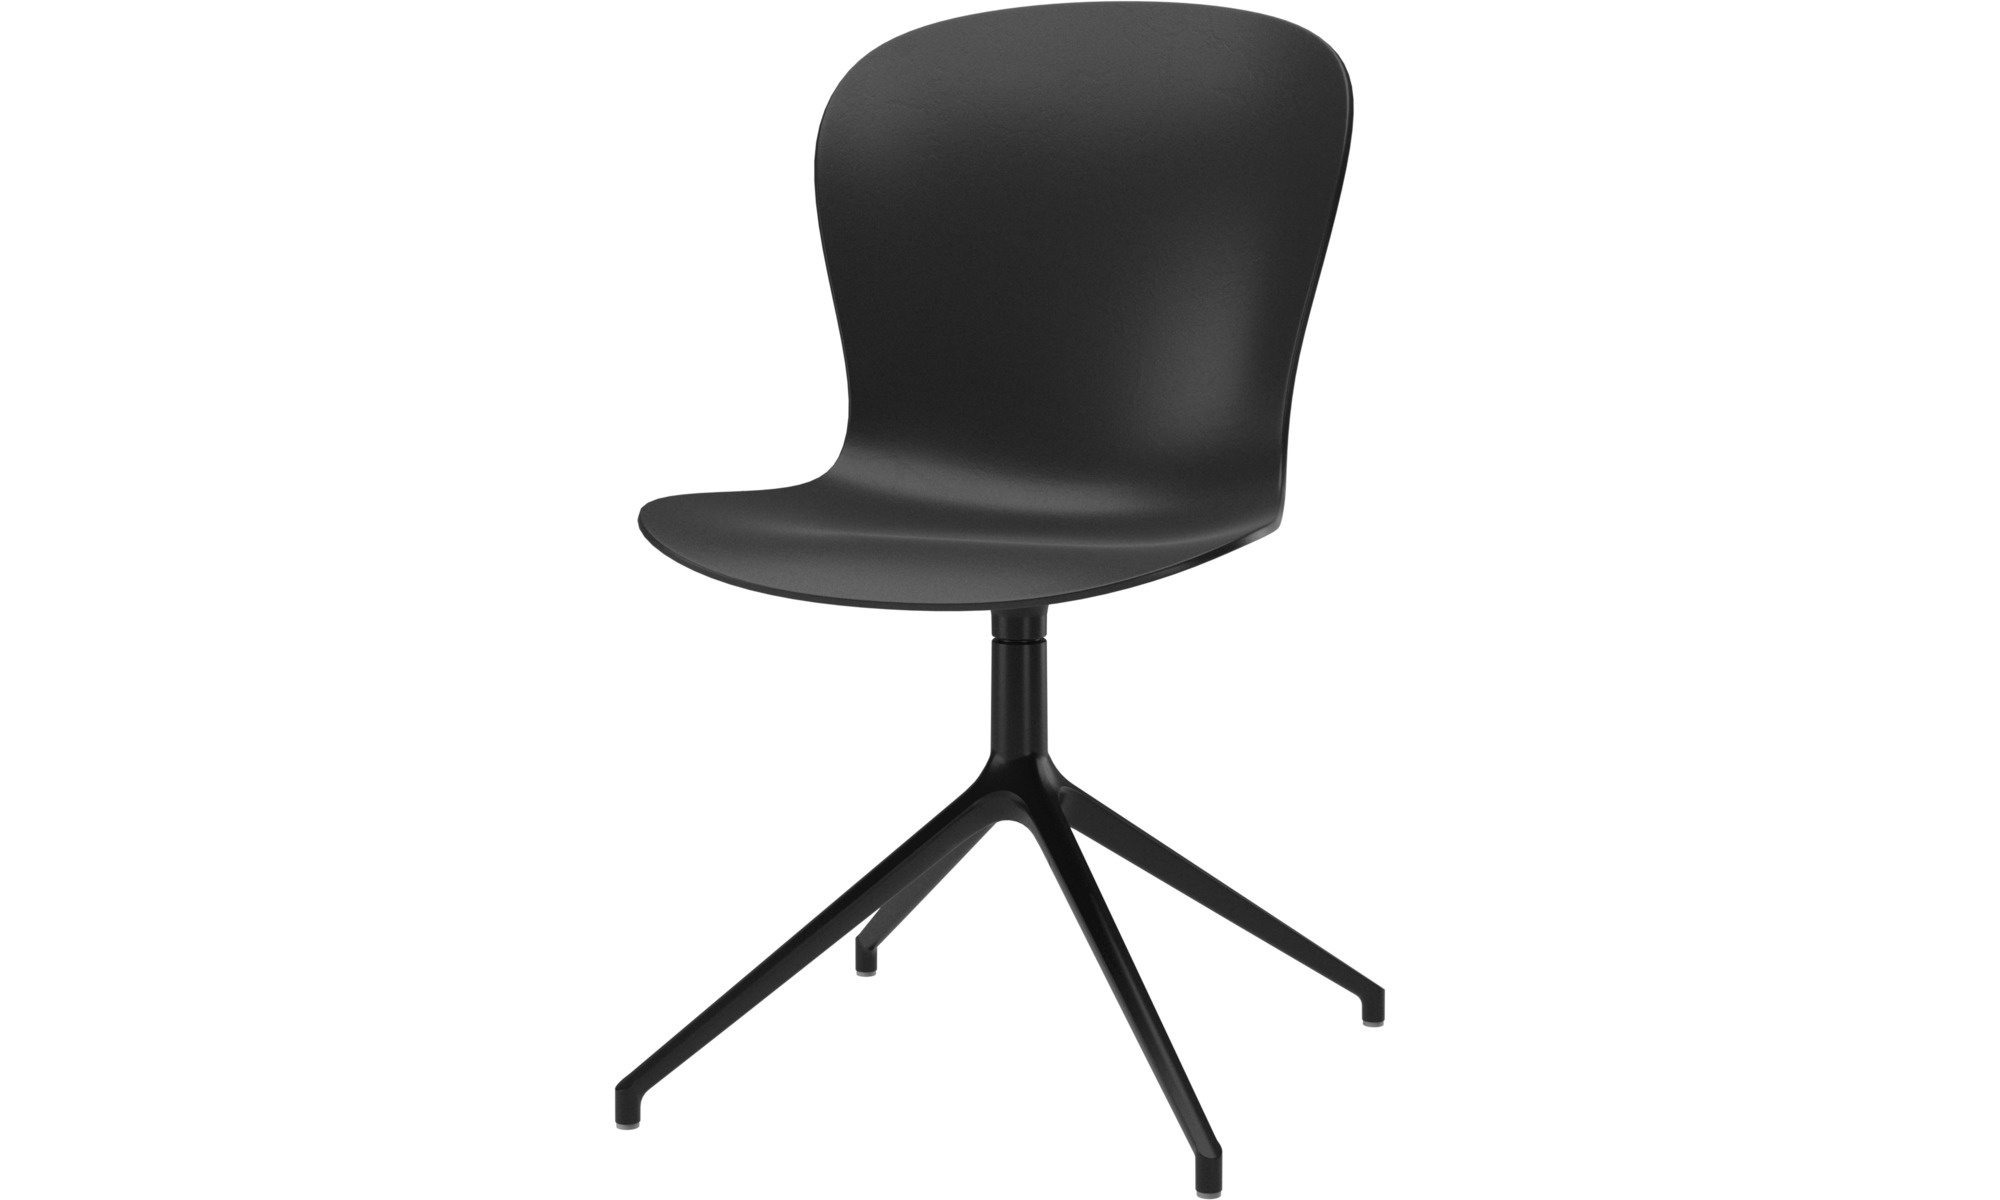 Home office chairs - Adelaide chair with swivel function - Black - Plastic